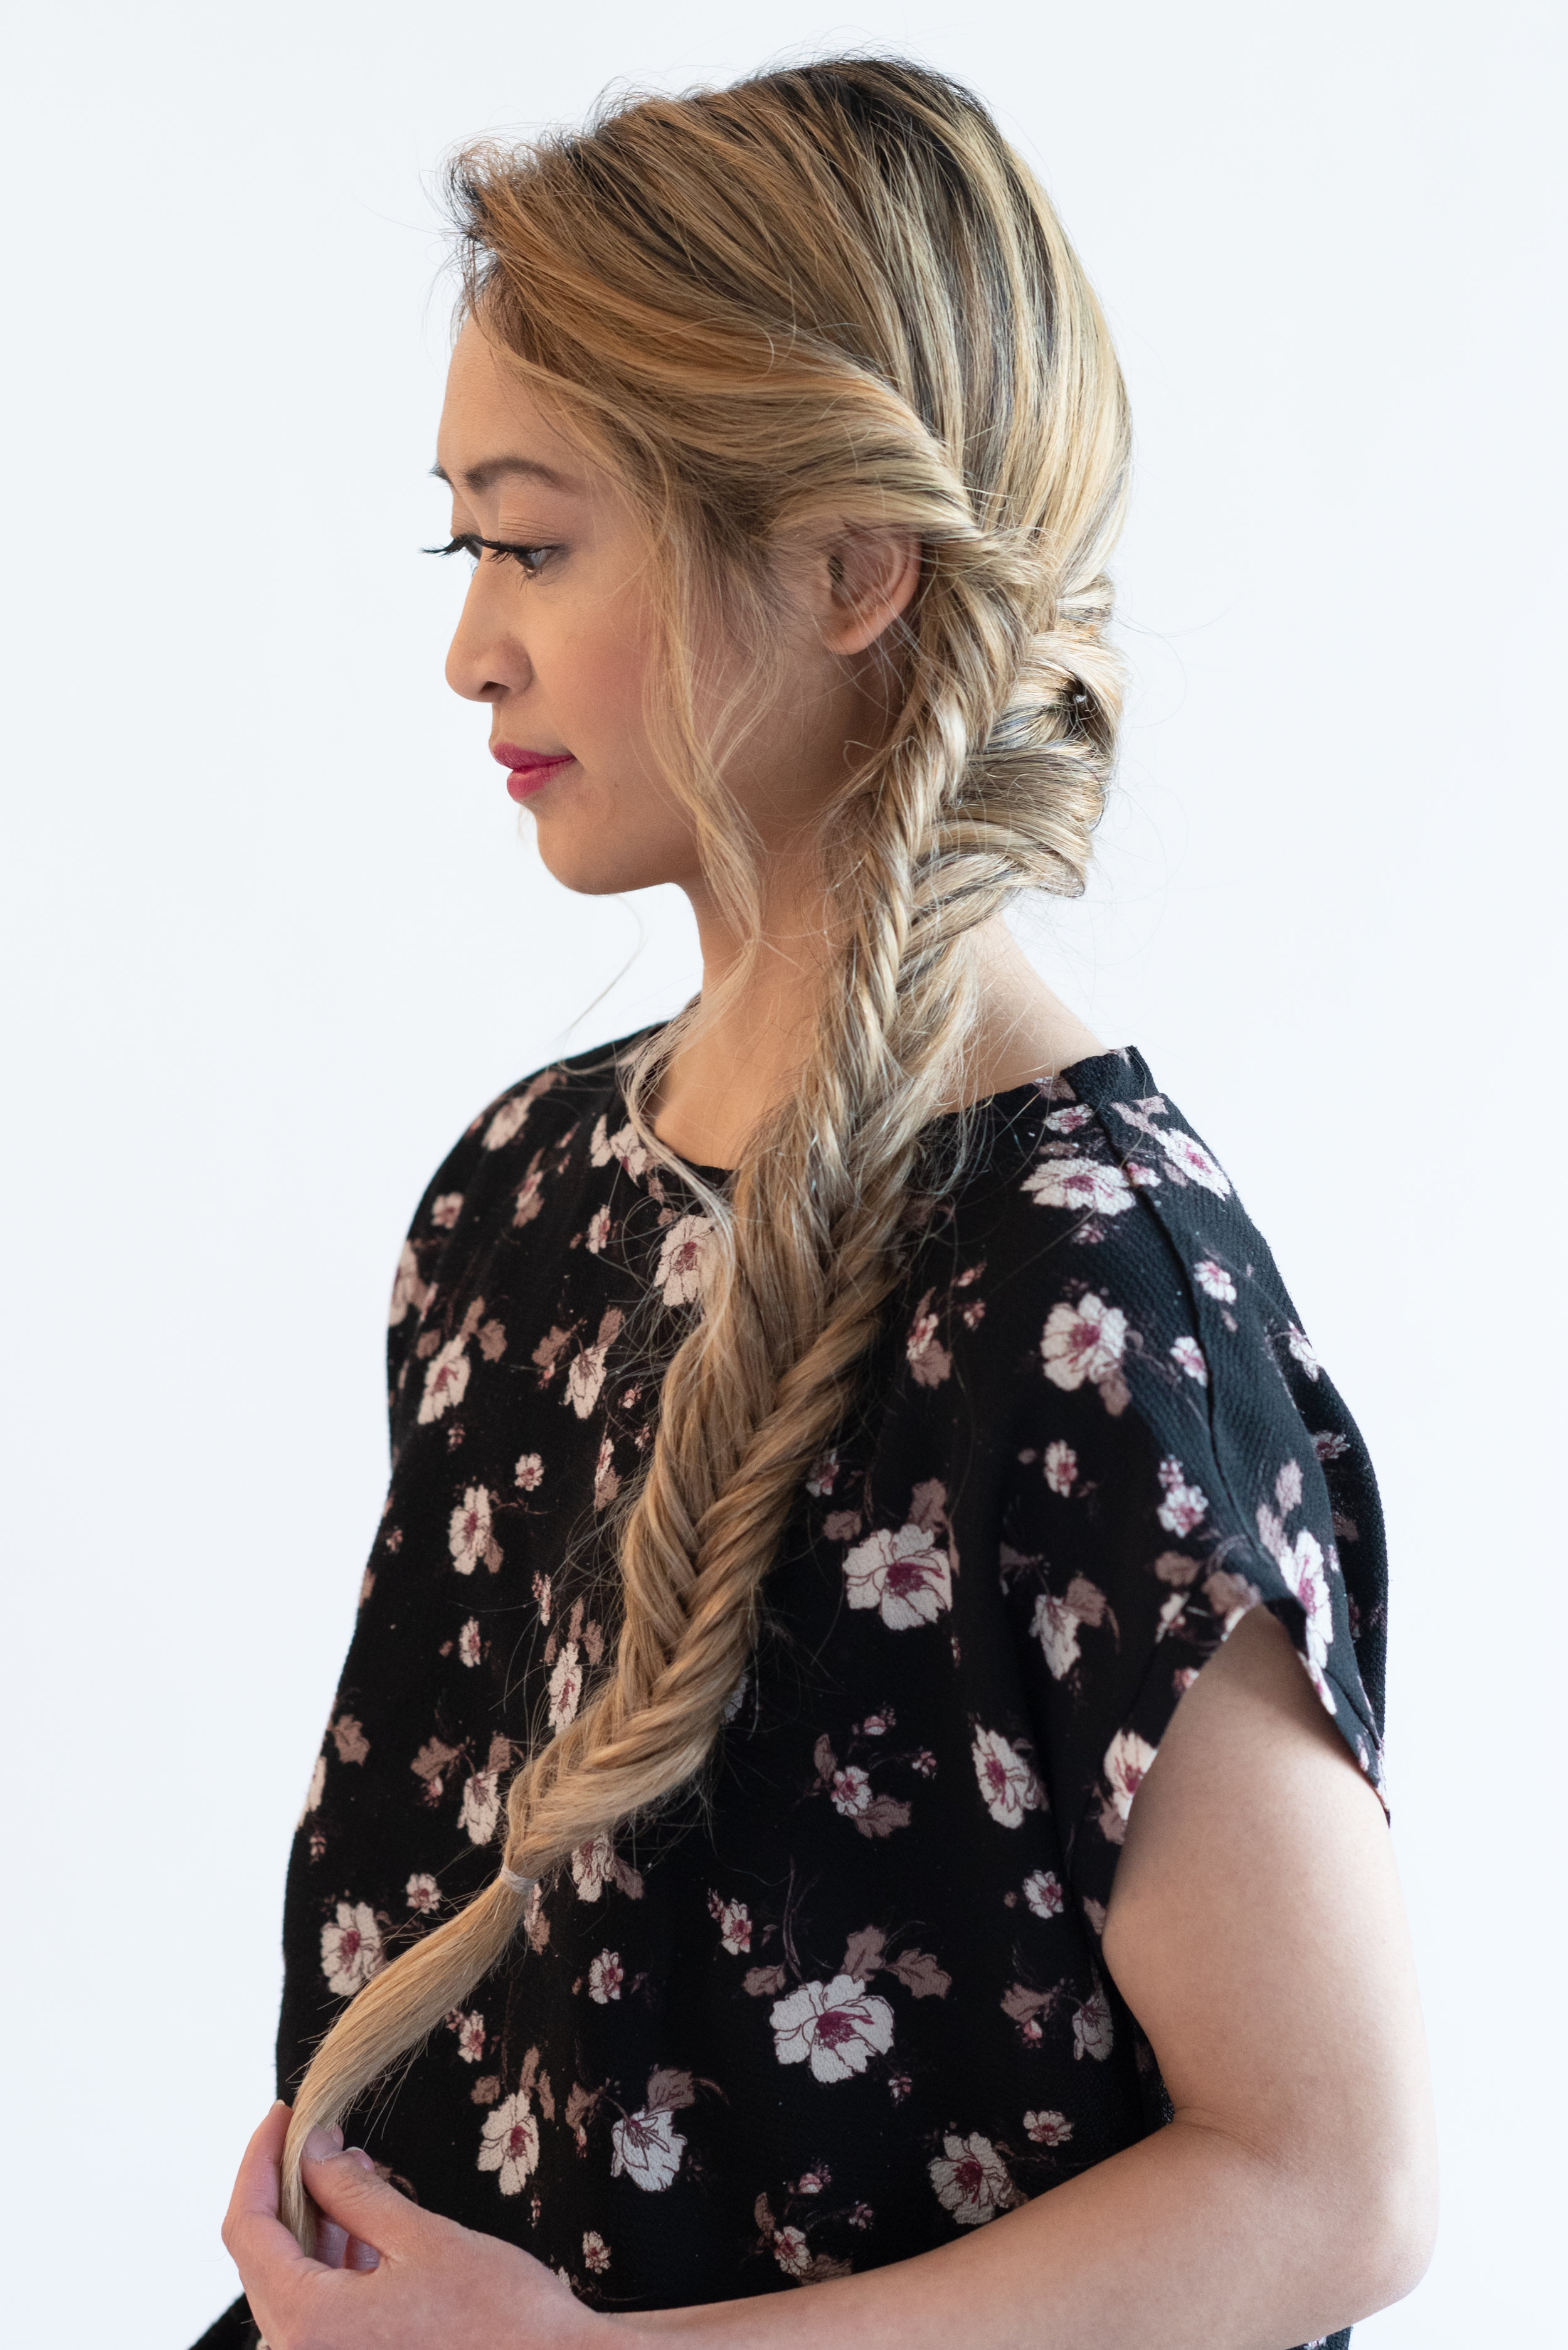 GO FISH. fishtail, or any braid, for effortless beauty on-the-go on your way to the boardwalk for the day.